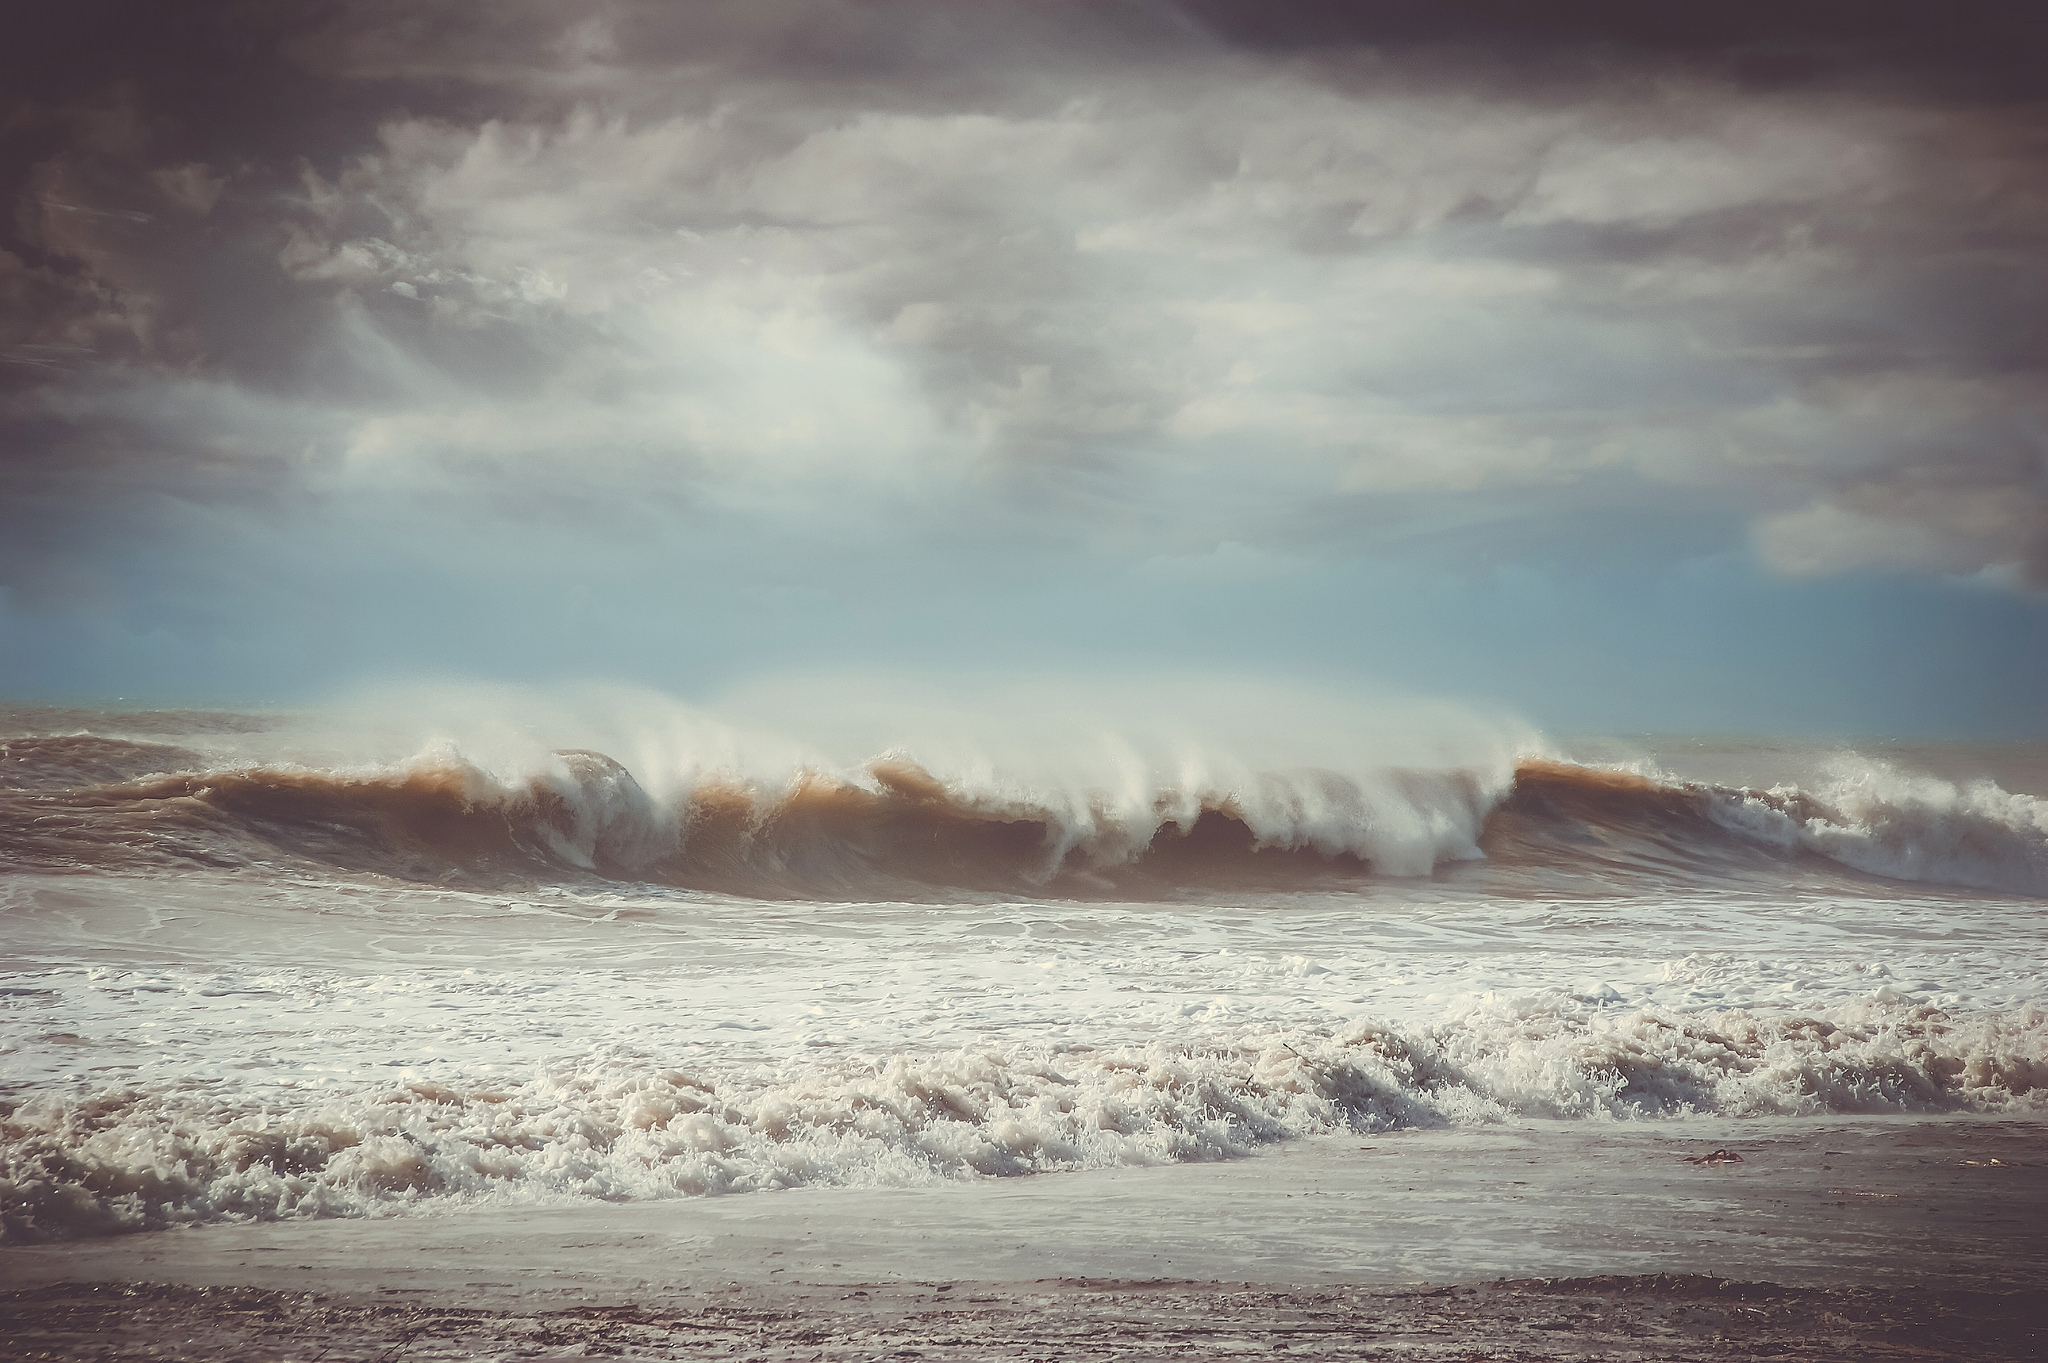 Stormy weather and the waves